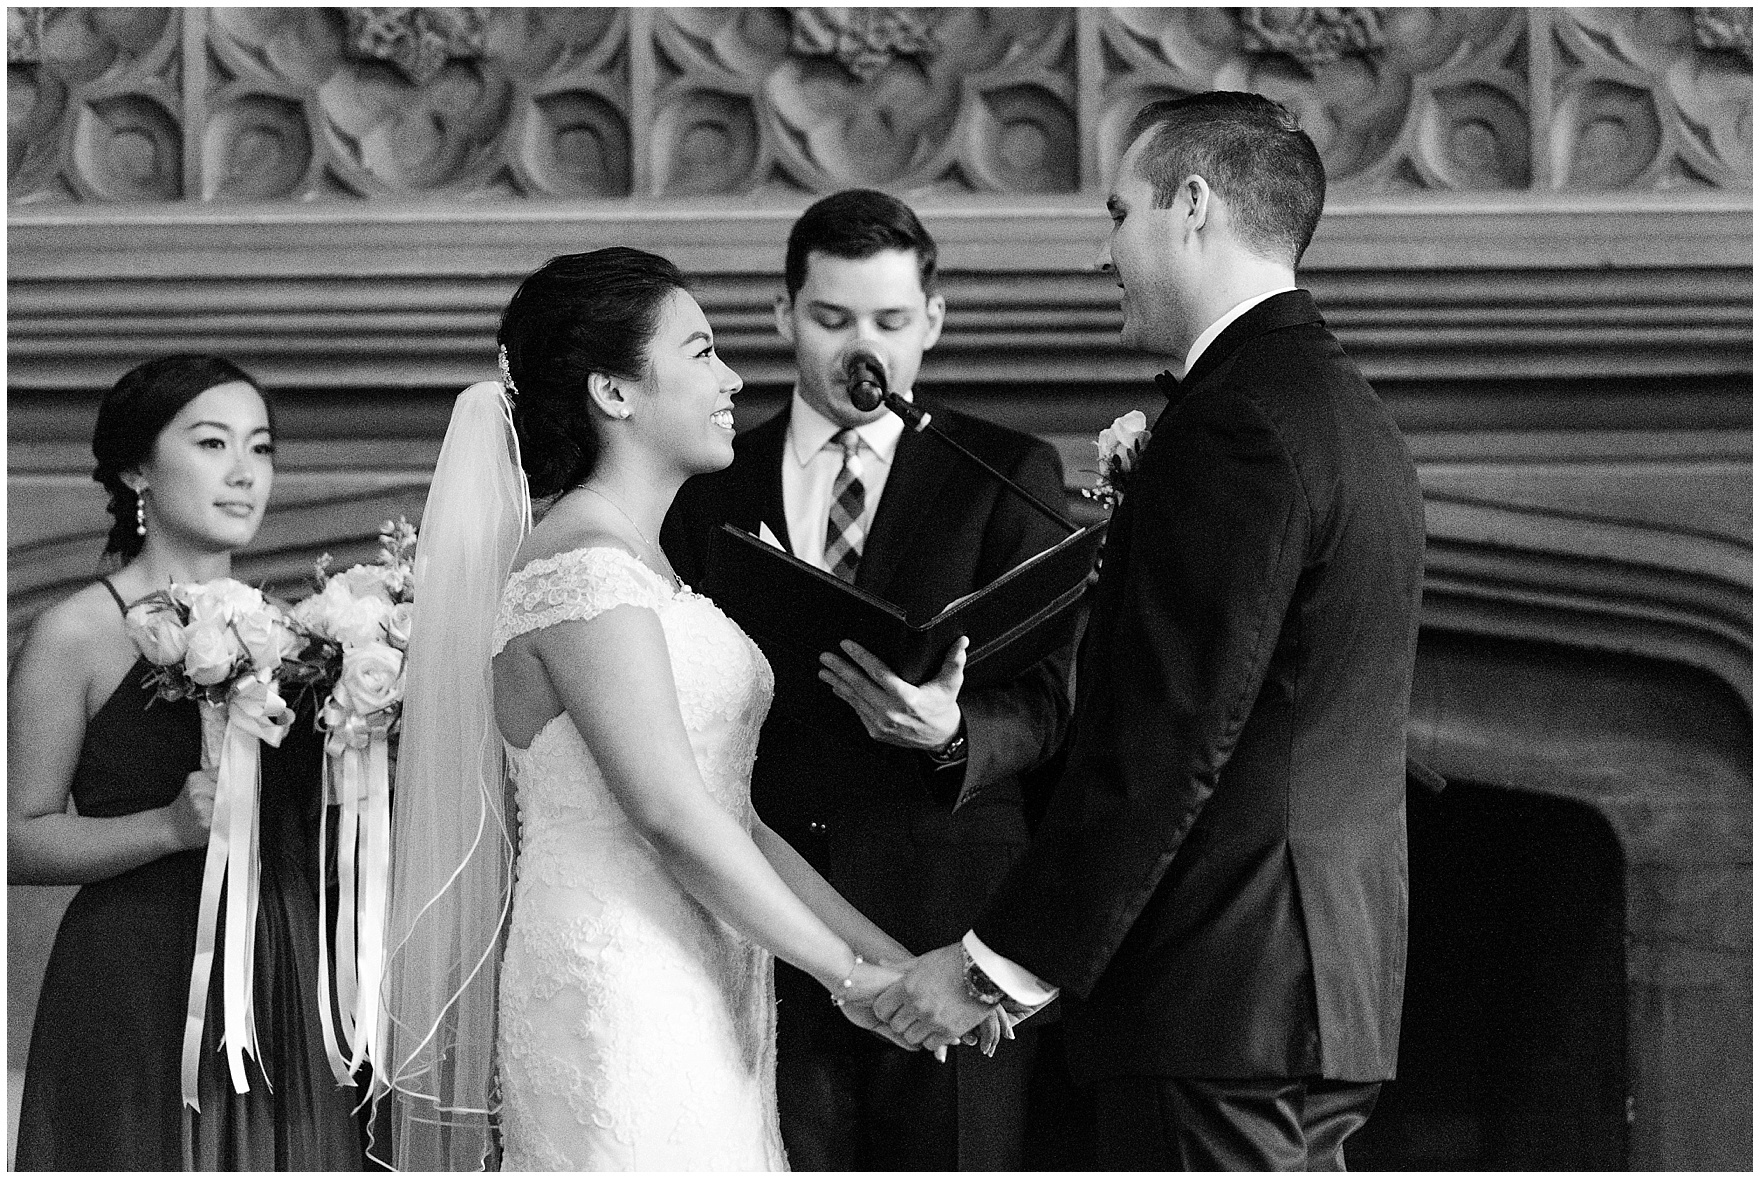 A bride and groom exchange vows in the Michigan Room during a University Club of Chicago wedding.